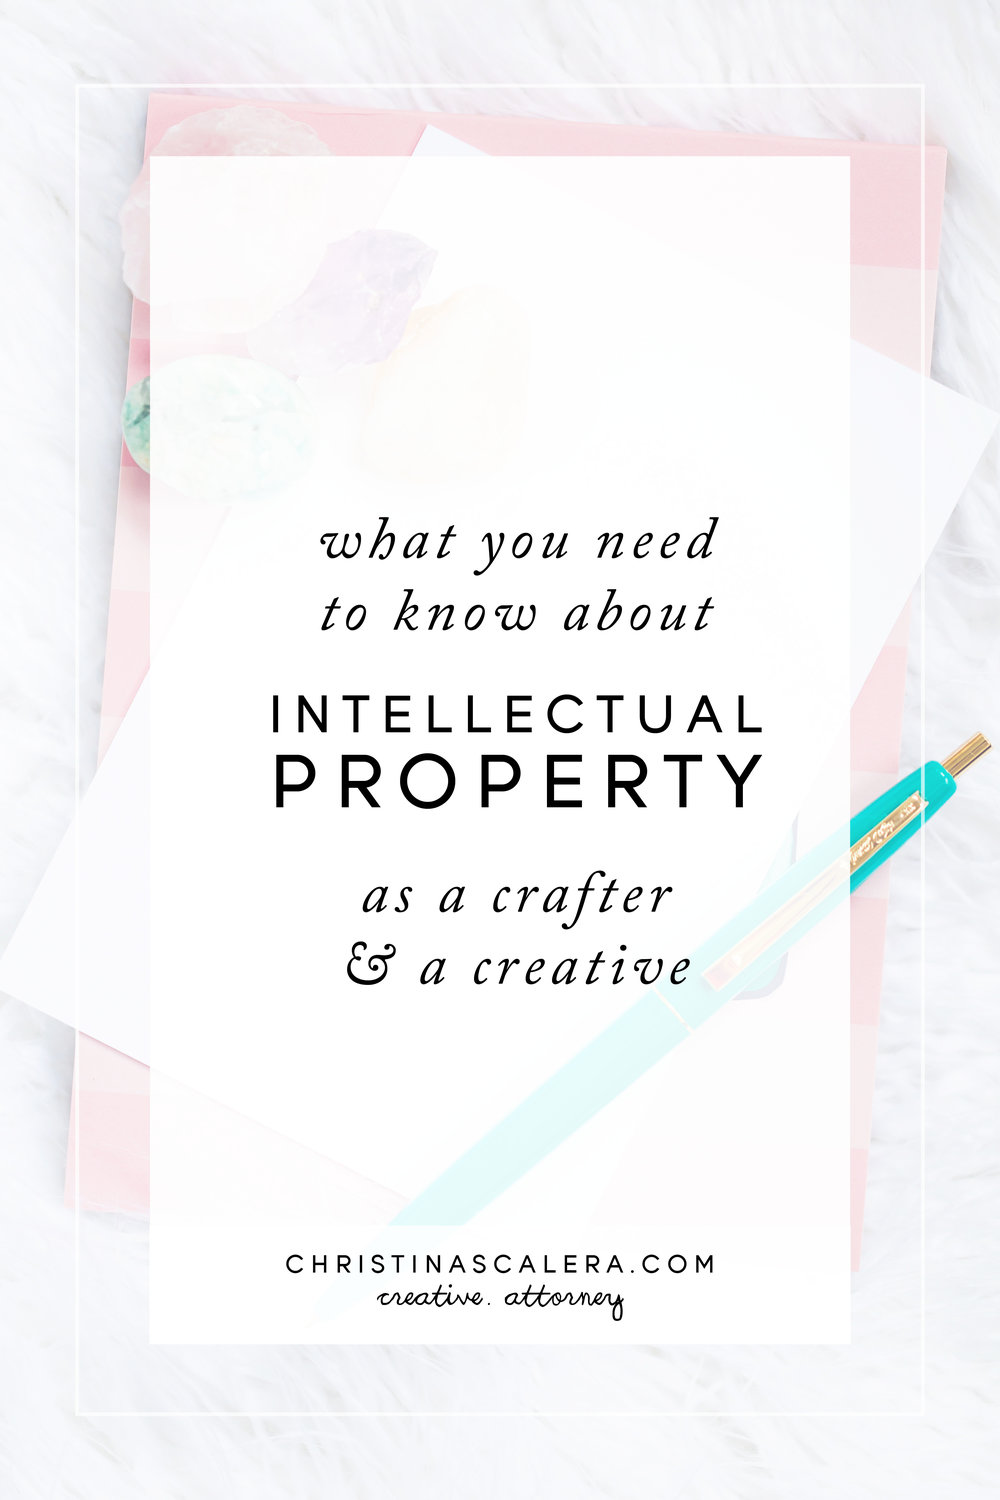 Intellectual Property as a crafter and creative.